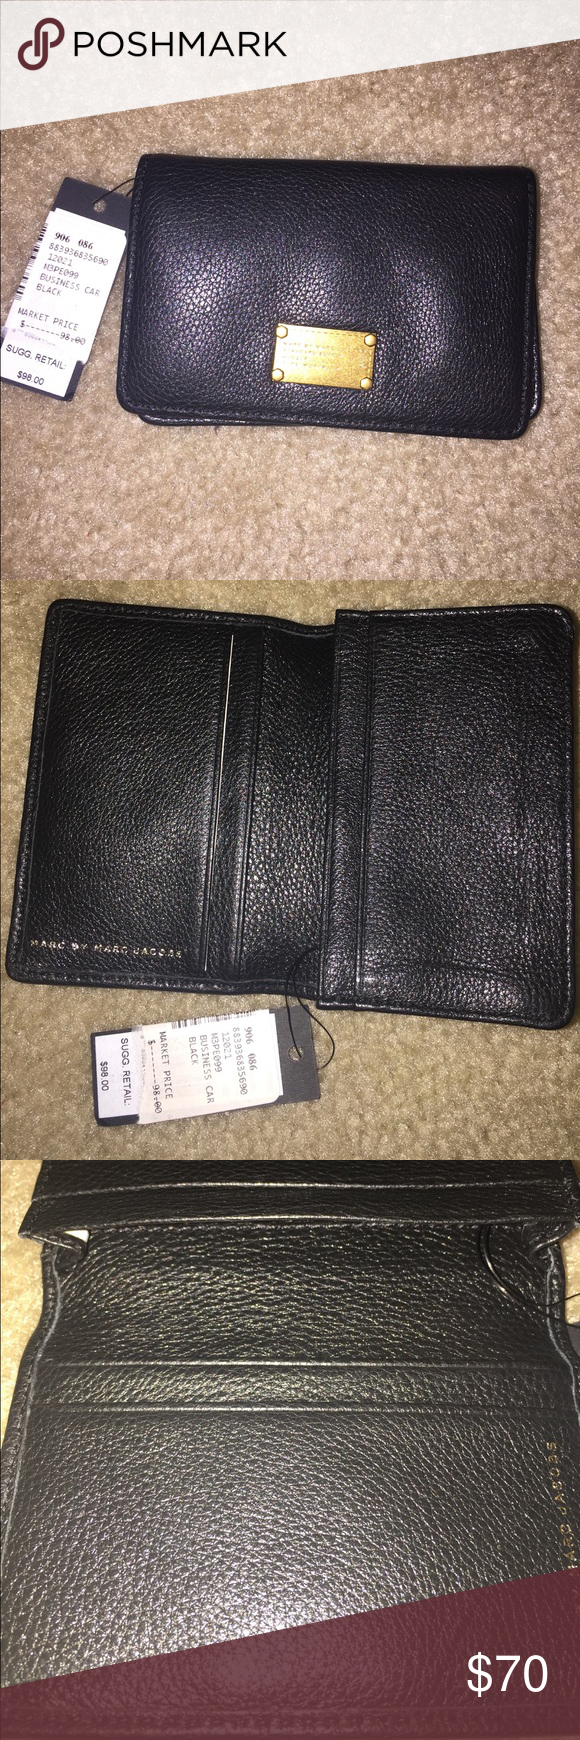 Marc Jacobs wallet NWT | Marc jacobs wallet, Smoke free and Jacob ...